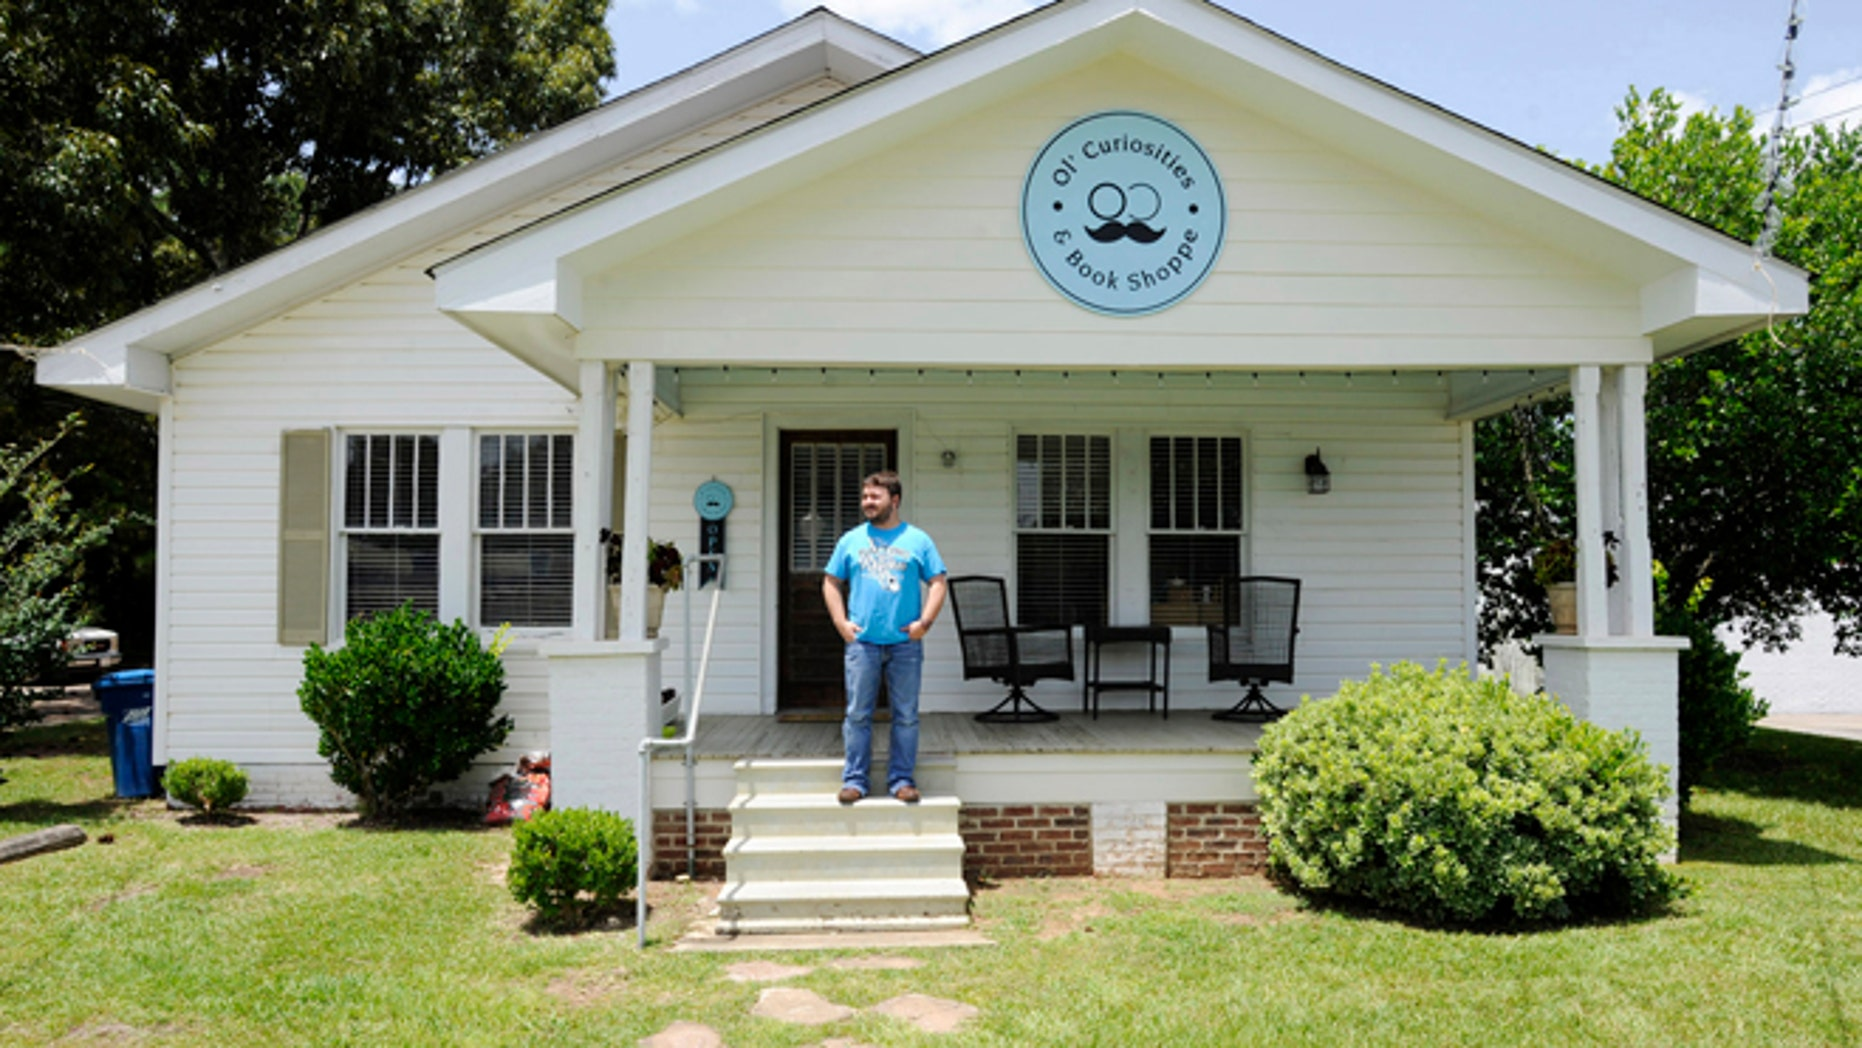 July 8, 2015: Spencer Madrie poses outside his store, Ol' Curiosities & Book Shoppe, in Monroeville, Ala.